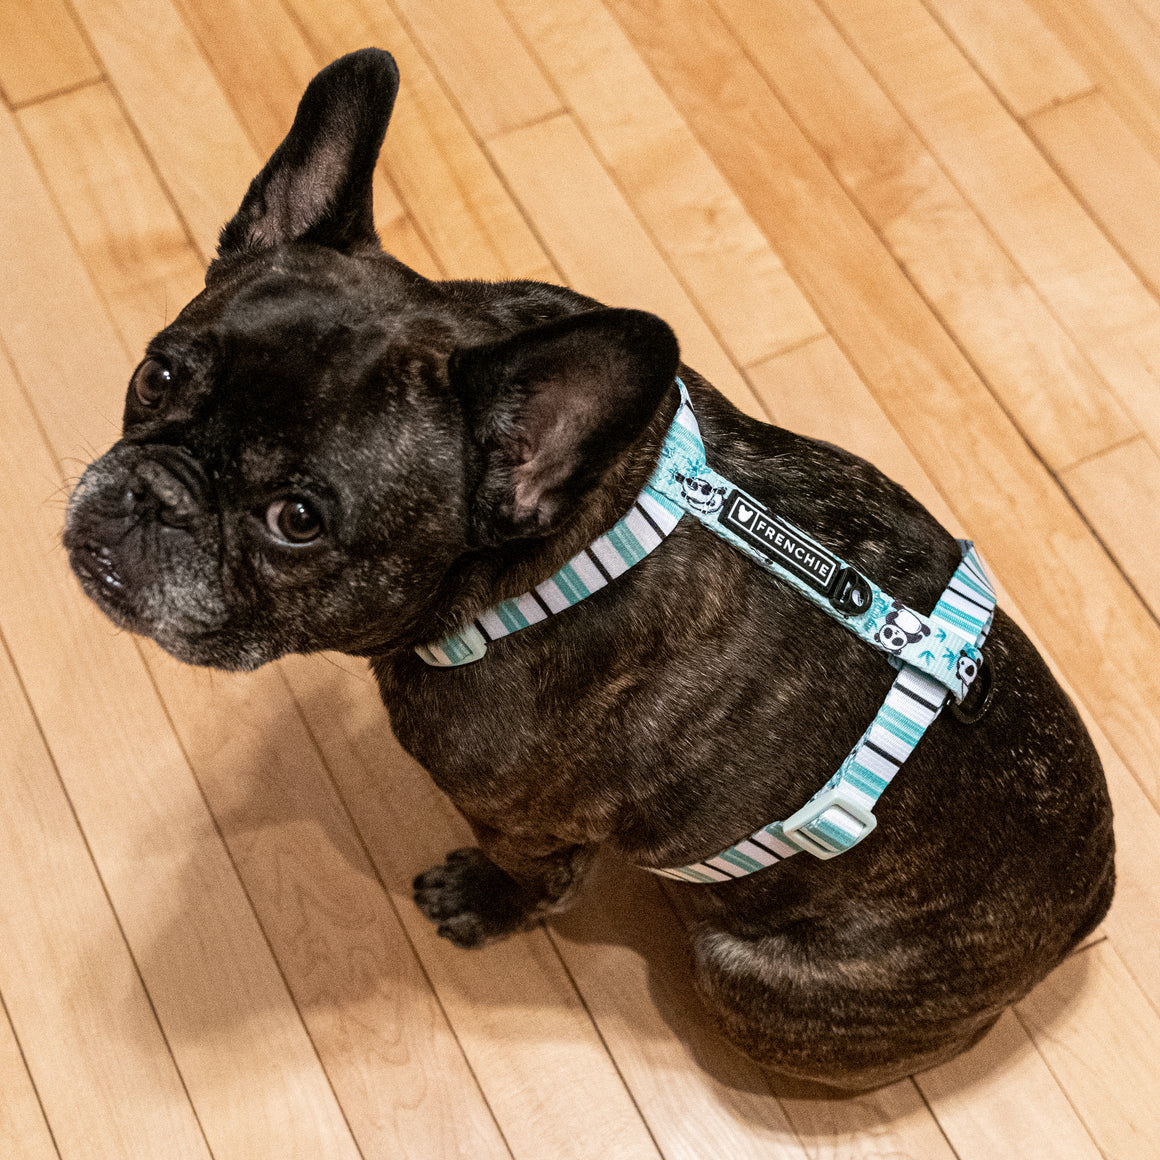 Frenchie Strap Harness - Green Panda - Frenchie Bulldog - Shop Harnesses for French Bulldogs - Shop French Bulldog Harness - Harnesses for Pugs